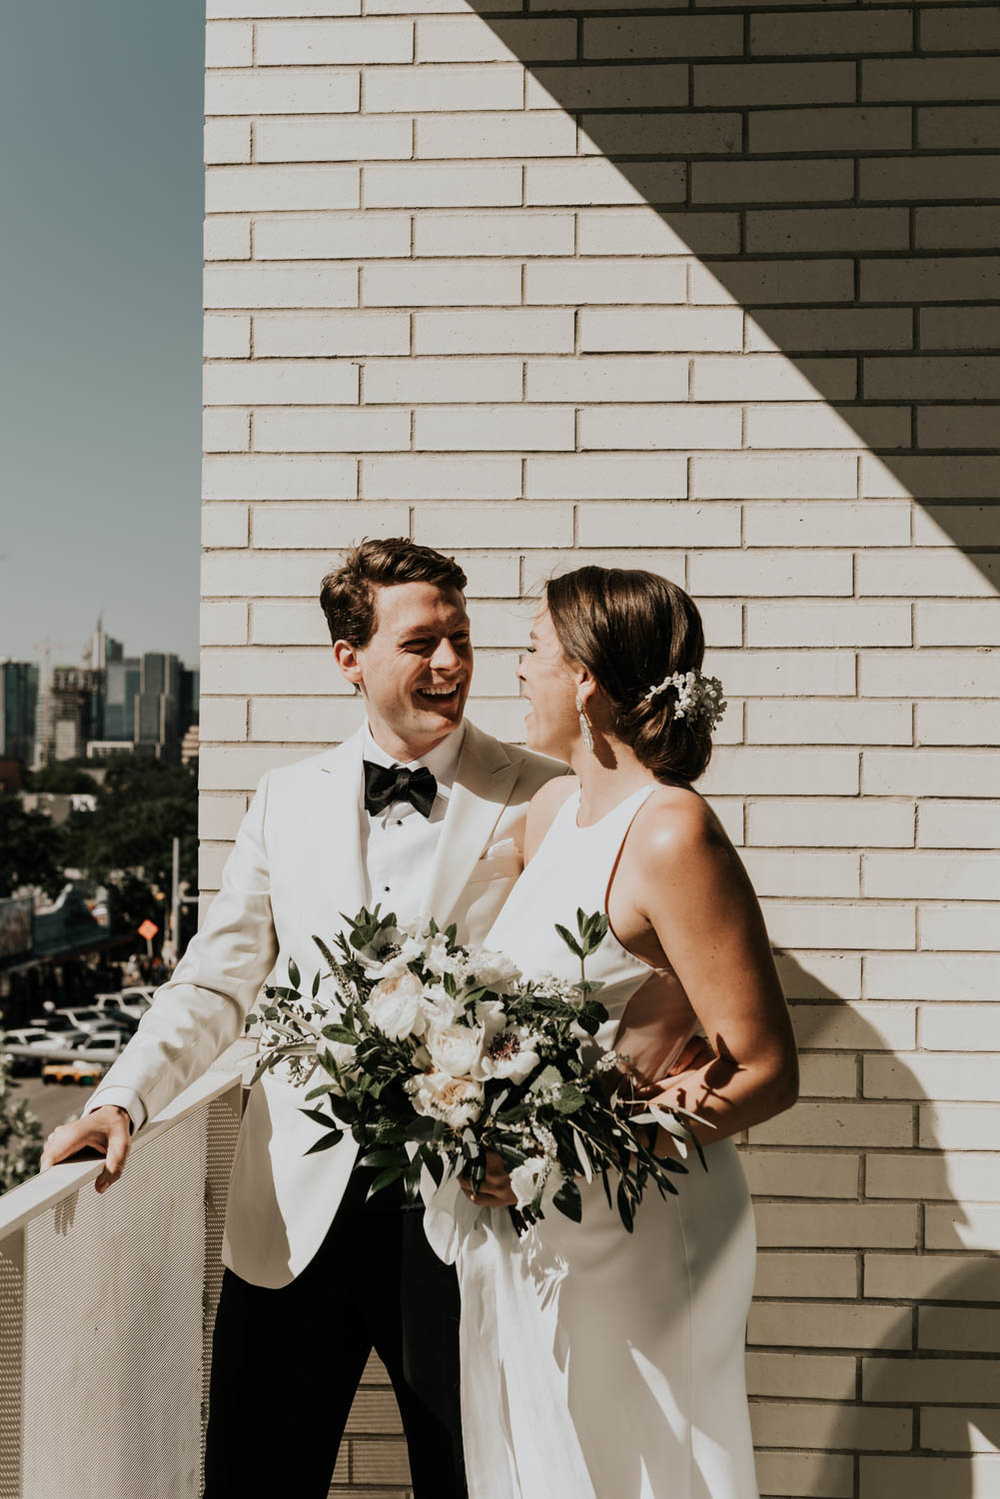 Intimate Wedding day Portraits at South Congress Hotel in Austin, Texas